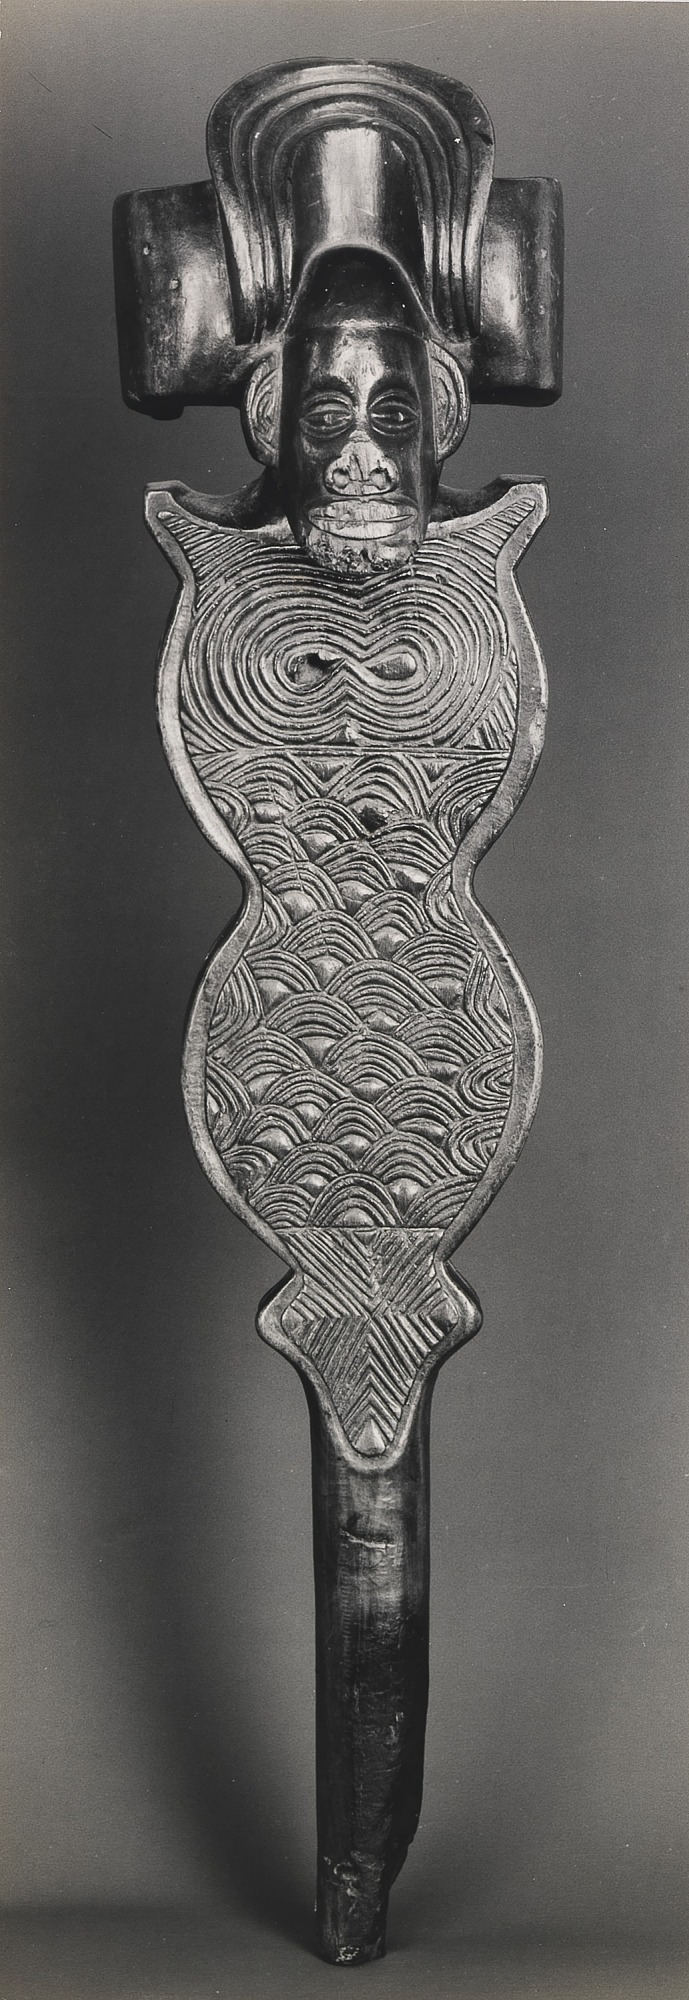 Sceptre. Wood. Bachokwe, Angola, from the series African Sculpture